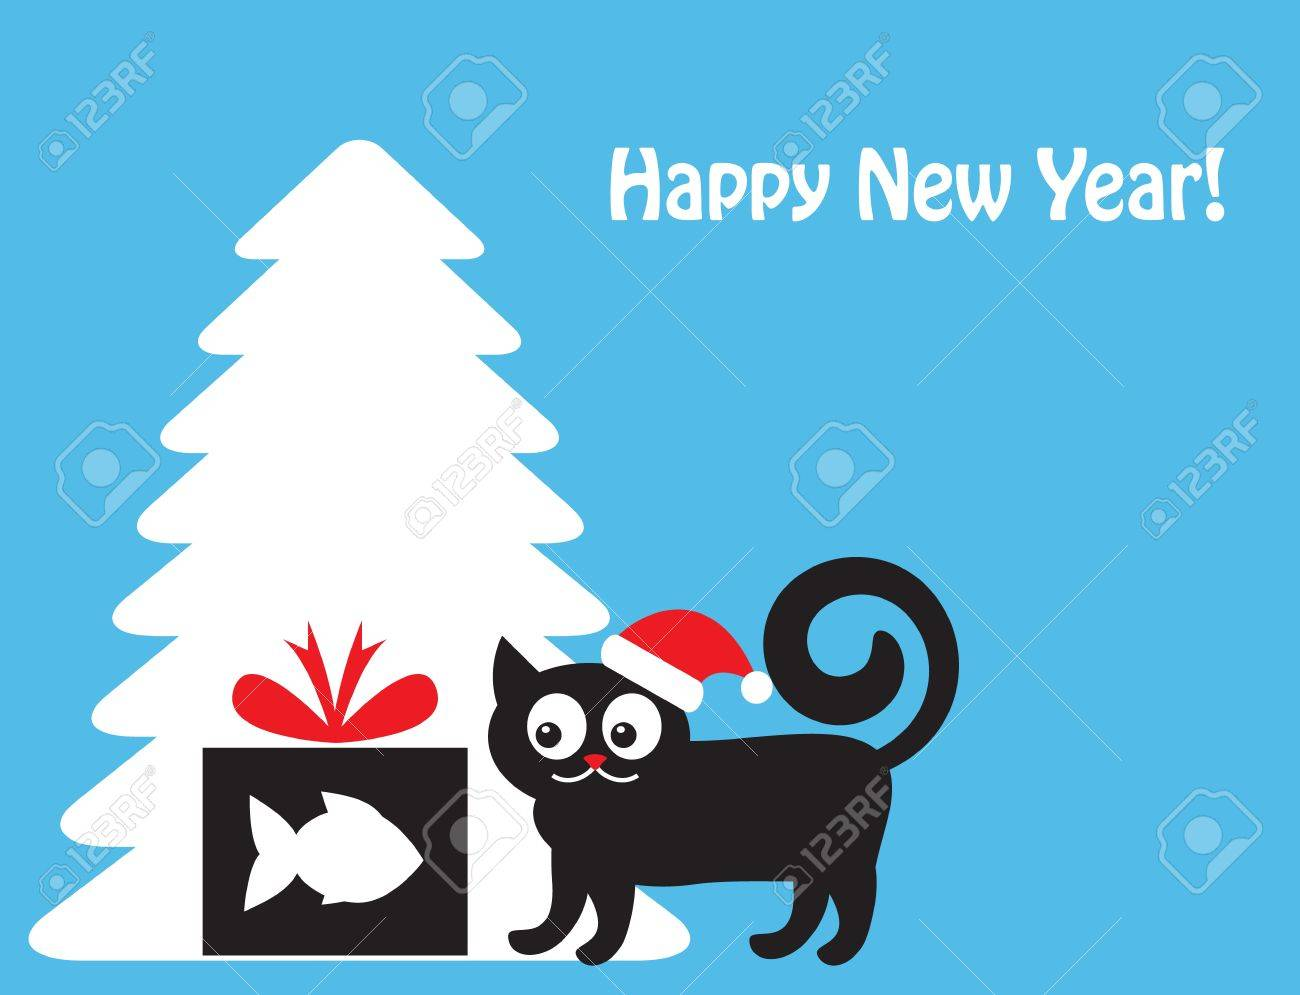 cat in a New Year s hat looking at a gift box with a silhouette of fish  Cat and gift shows in the background silhouette of Christmas tree Stock Vector - 16394288